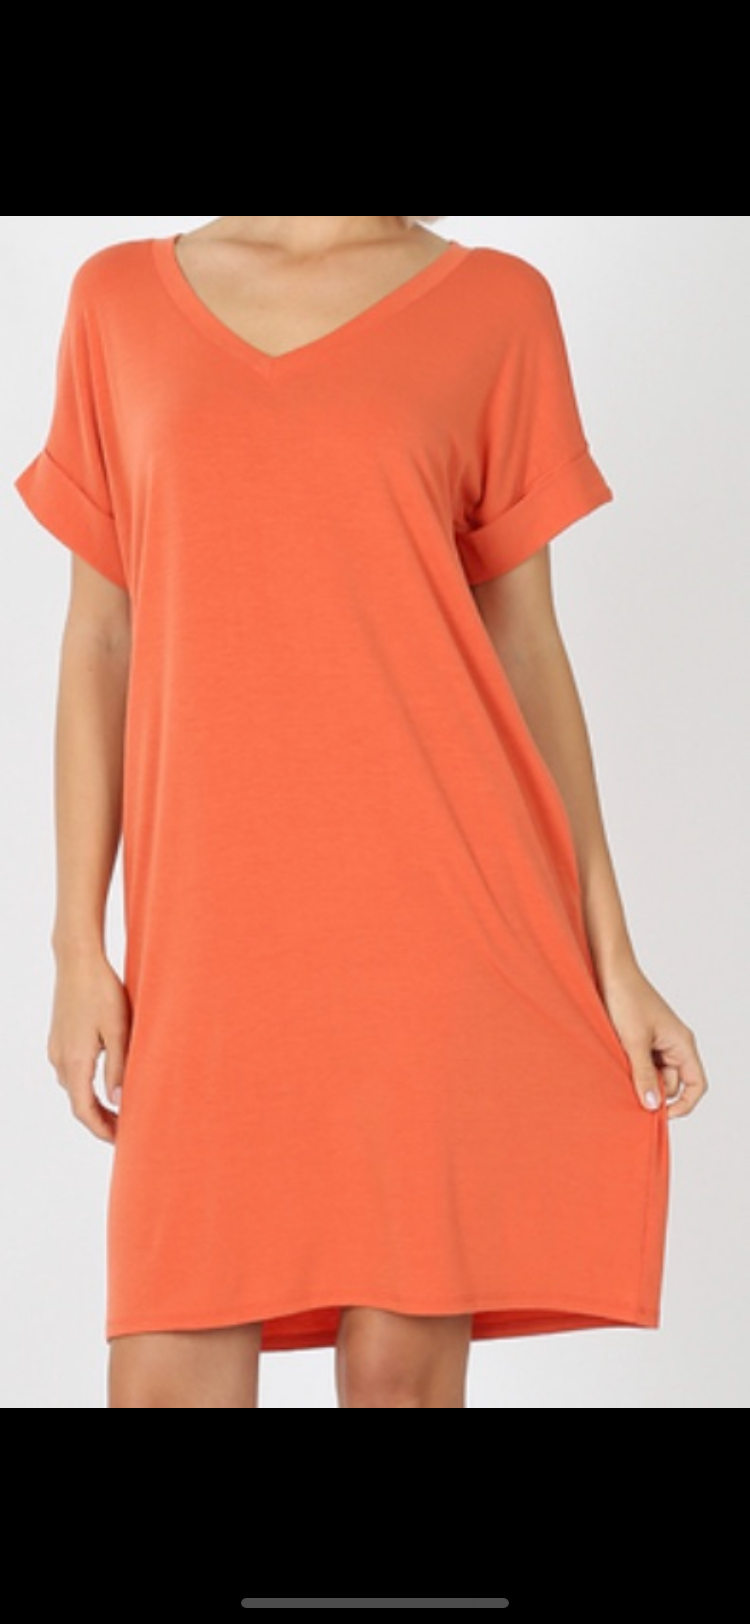 PLUS SIZE Ambi T Shirt Dress- PLUS SIZE Available in 2 Colors